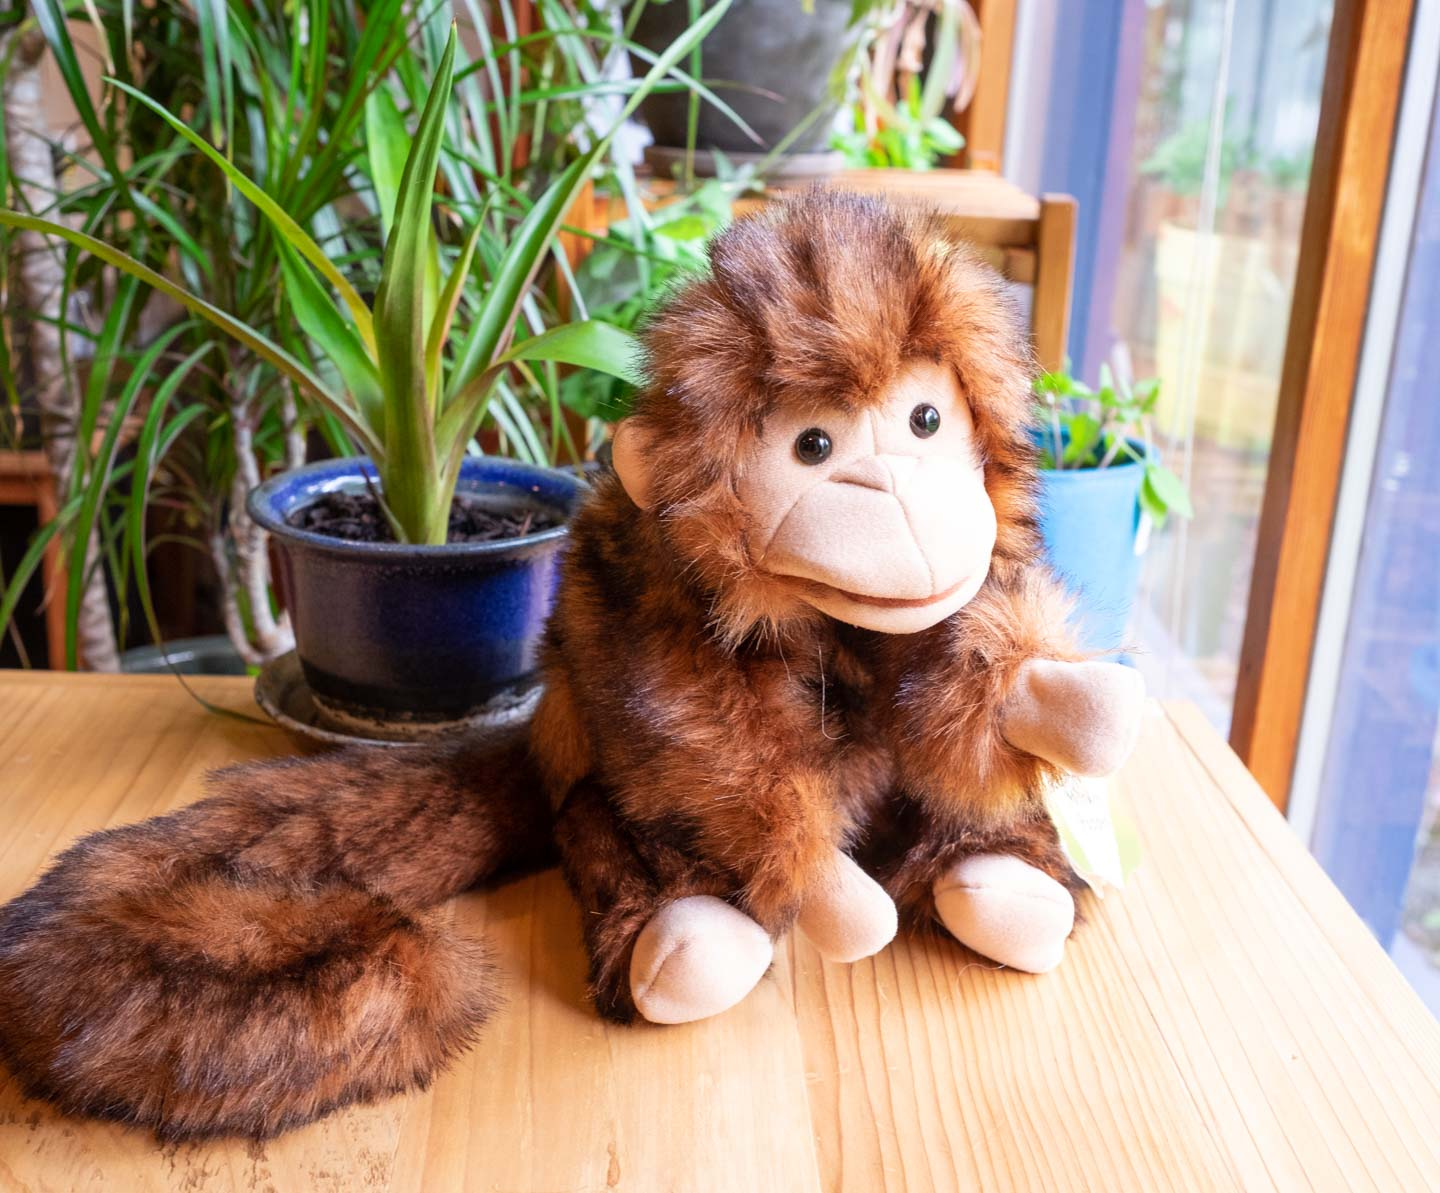 Brown monkey puppet with long tail